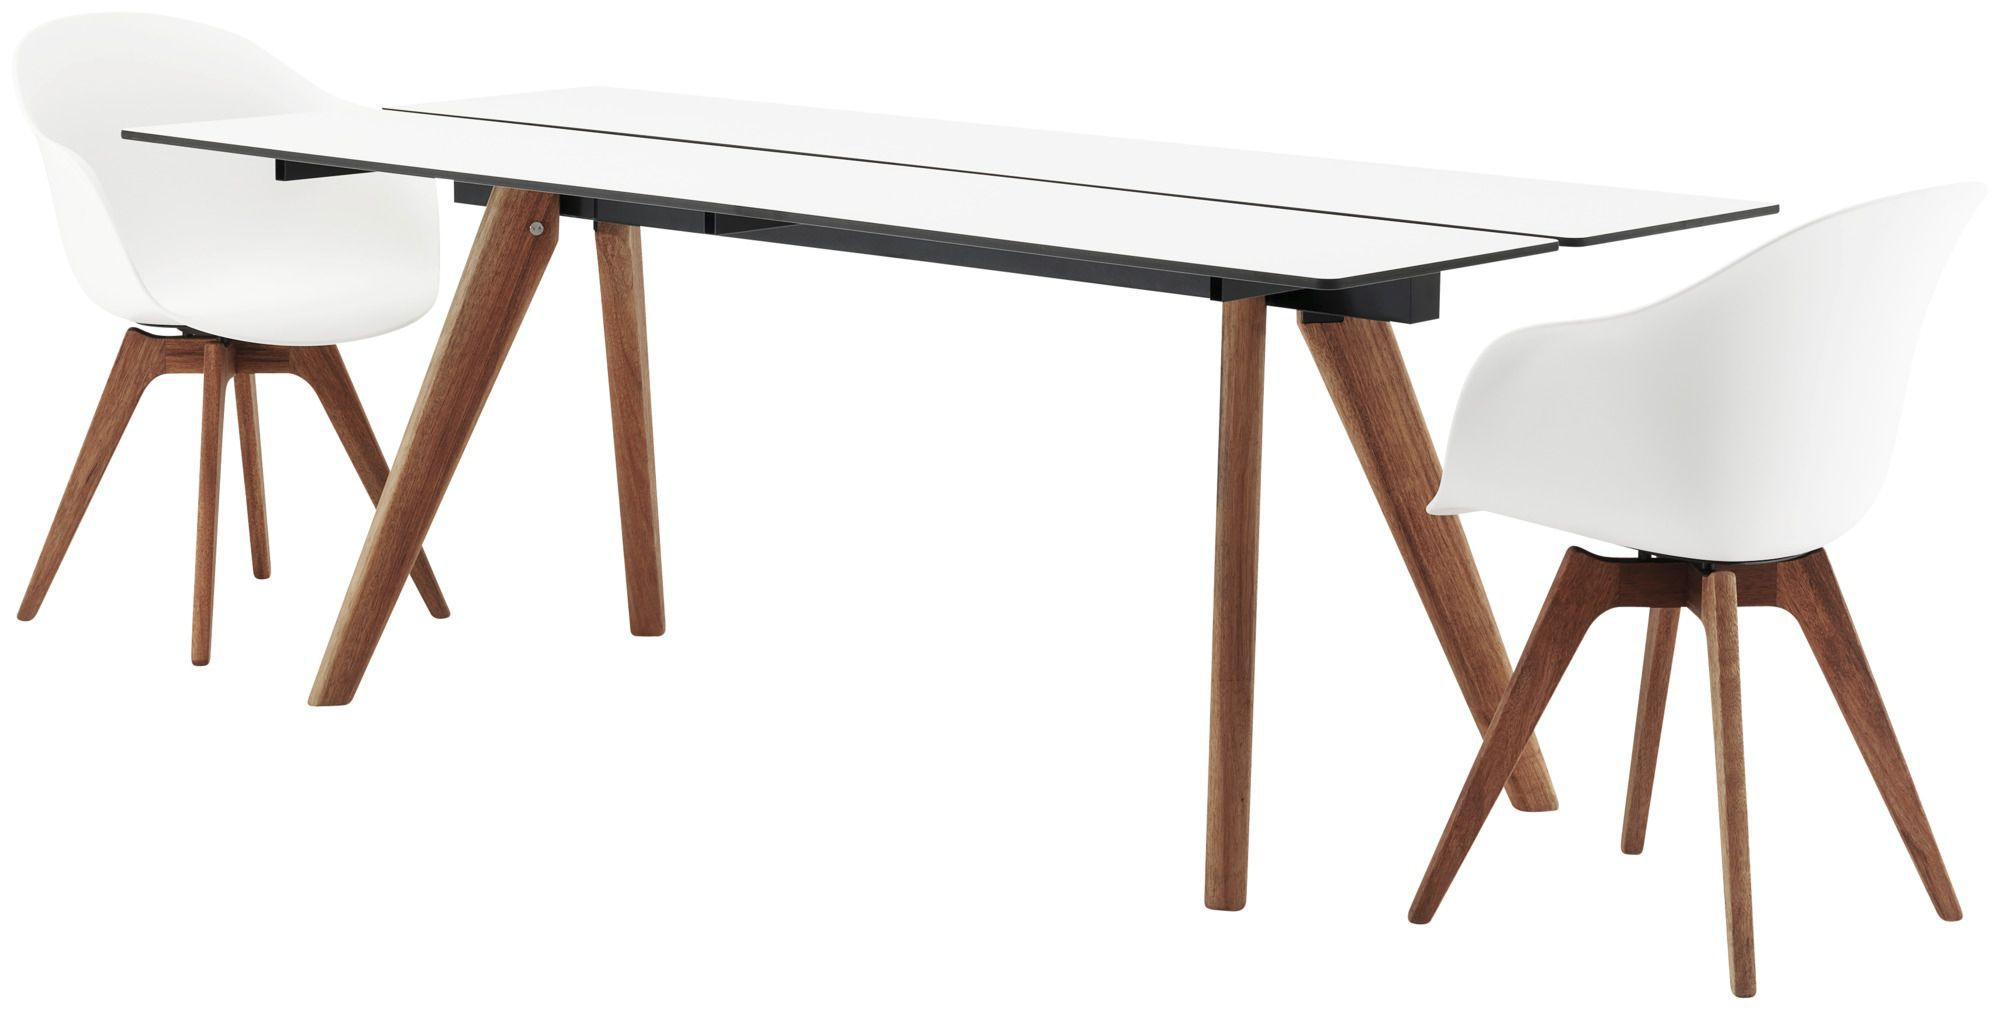 Contemporary dining table wooden laminate rectangular